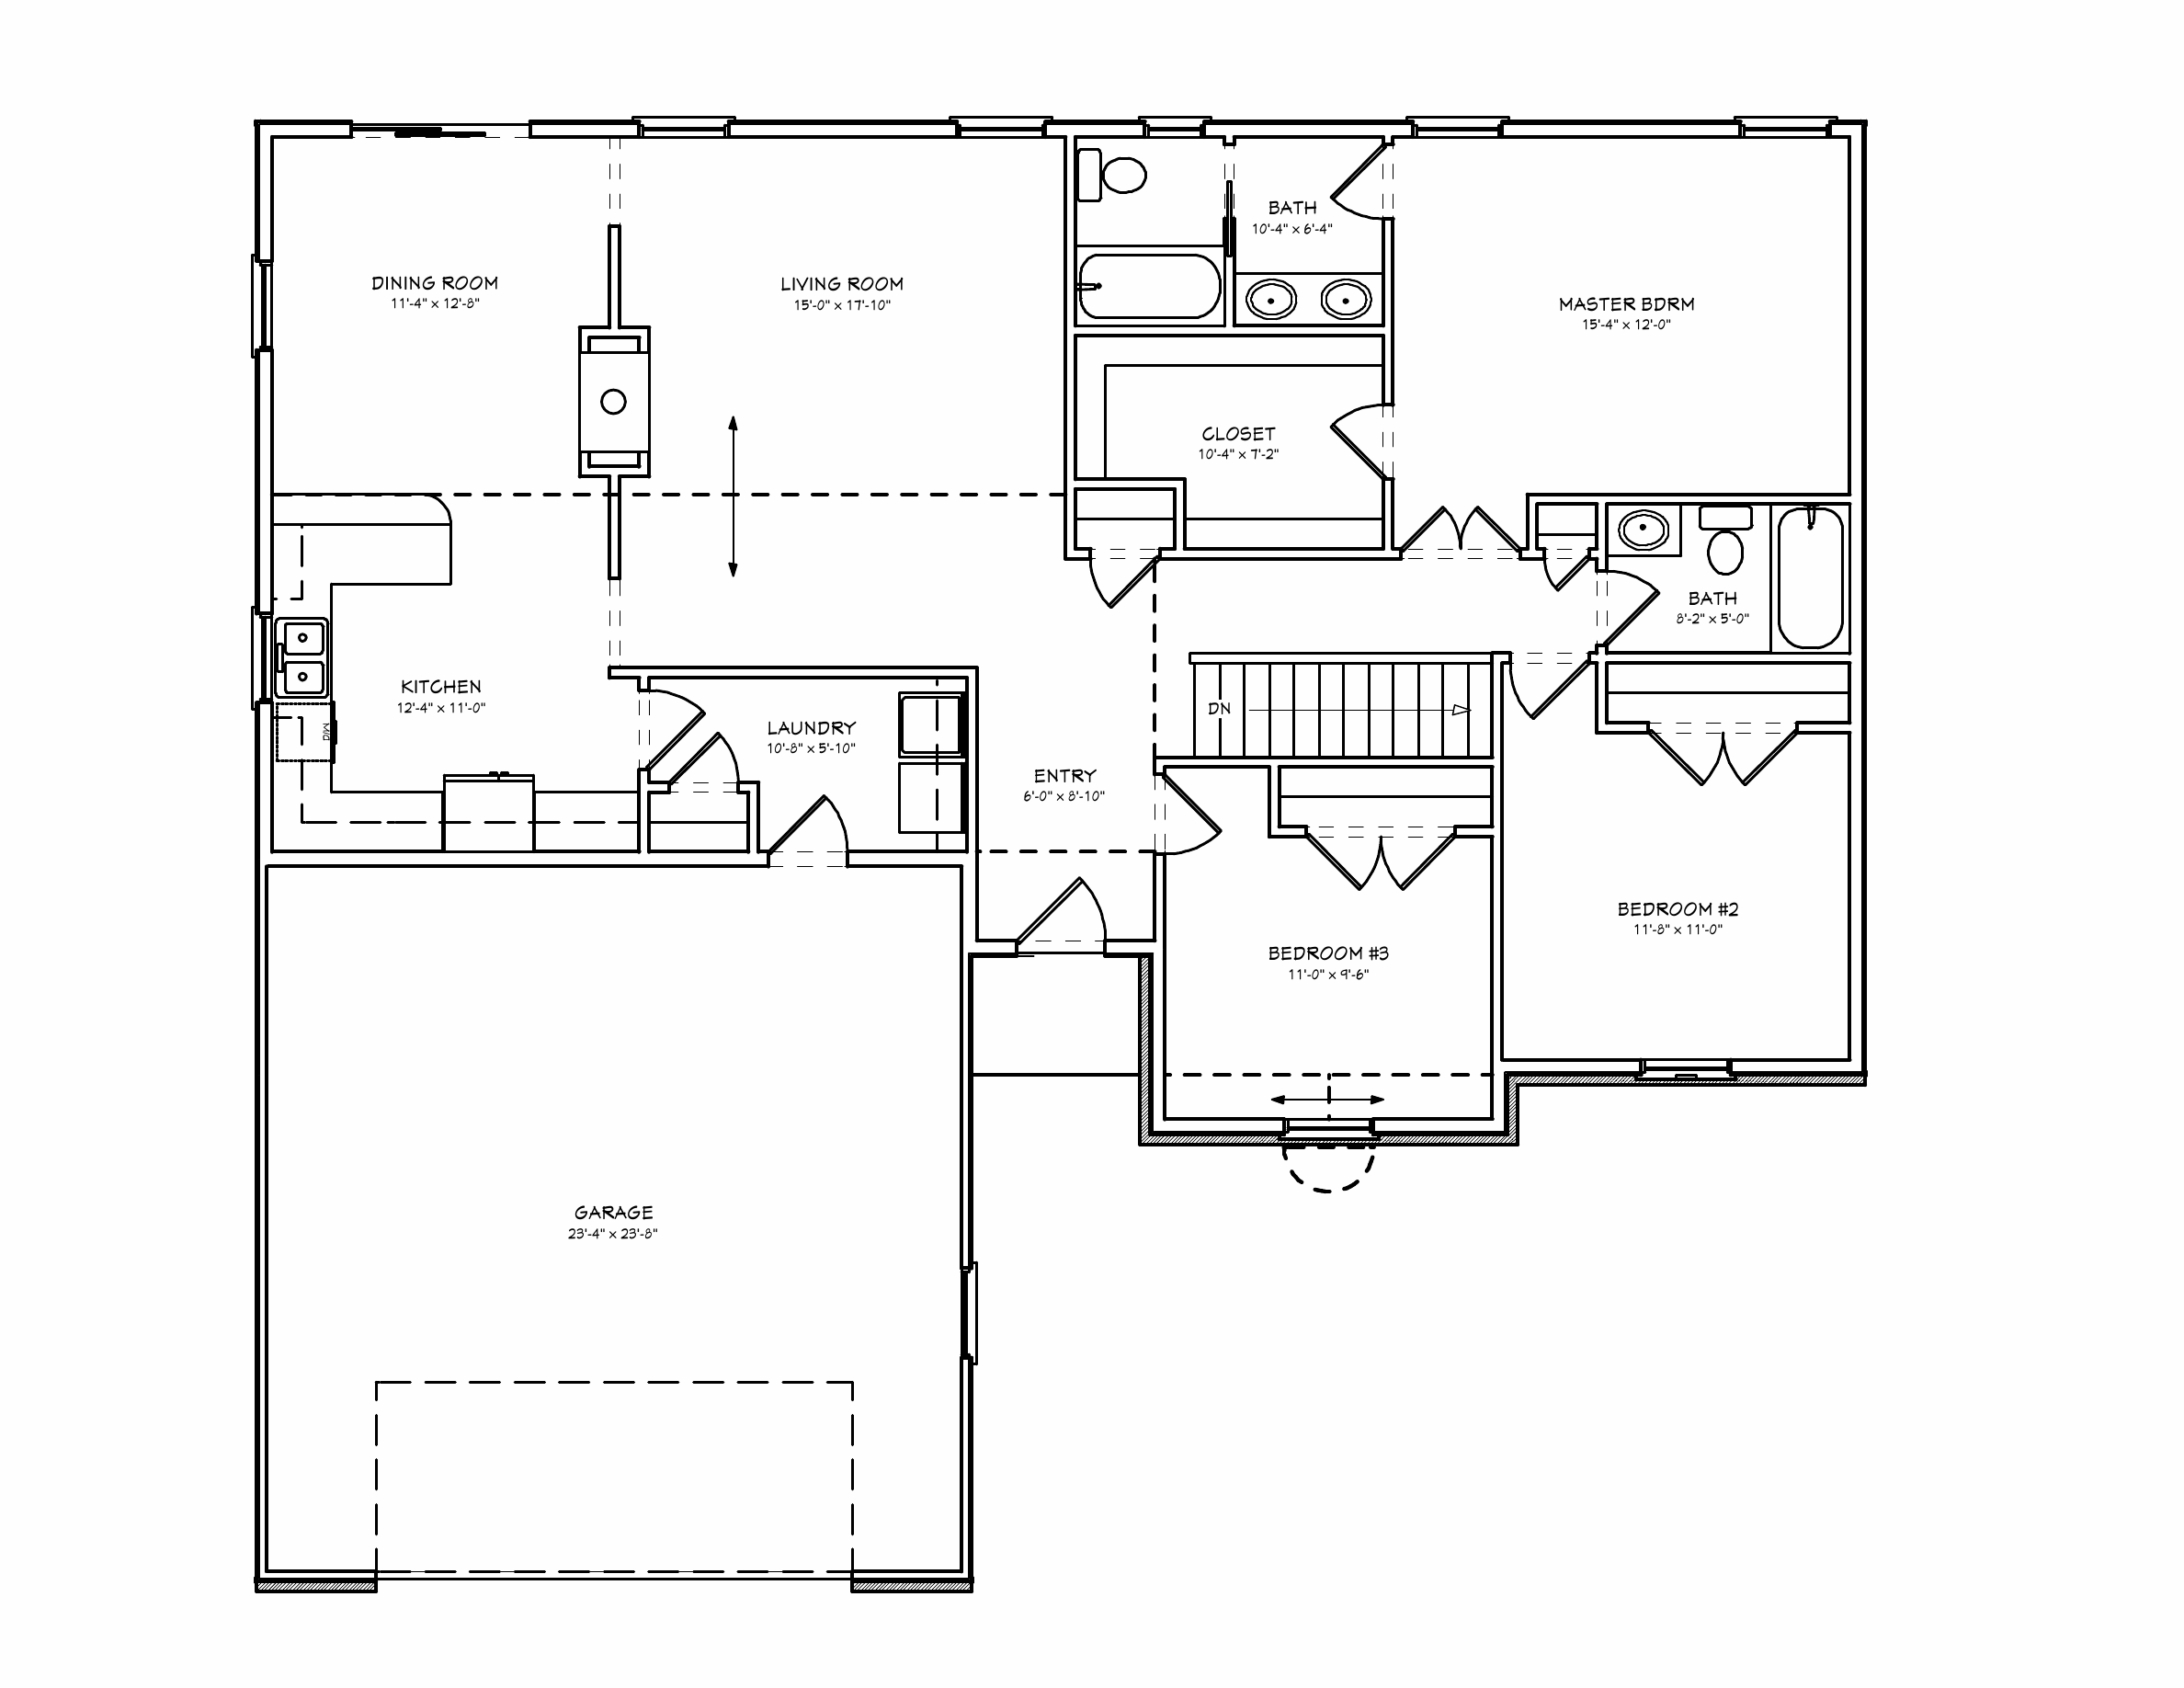 1000 square foot house plans floor plans pinterest for Small square footage house plans